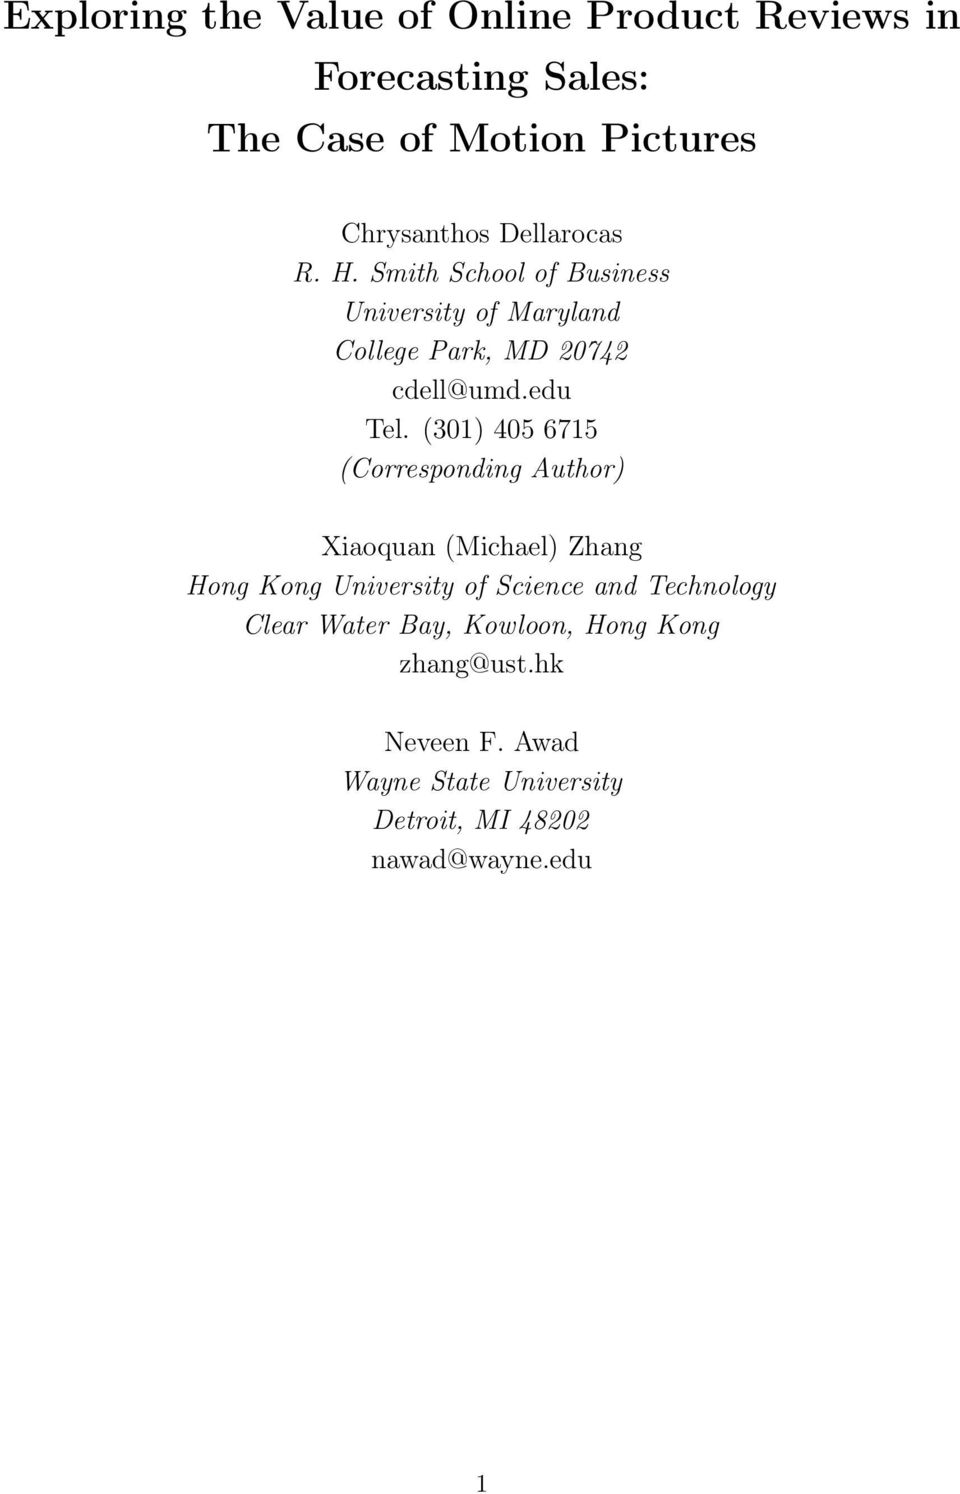 (301) 405 6715 (Corresponding Author) Xiaoquan (Michael) Zhang Hong Kong University of Science and Technology